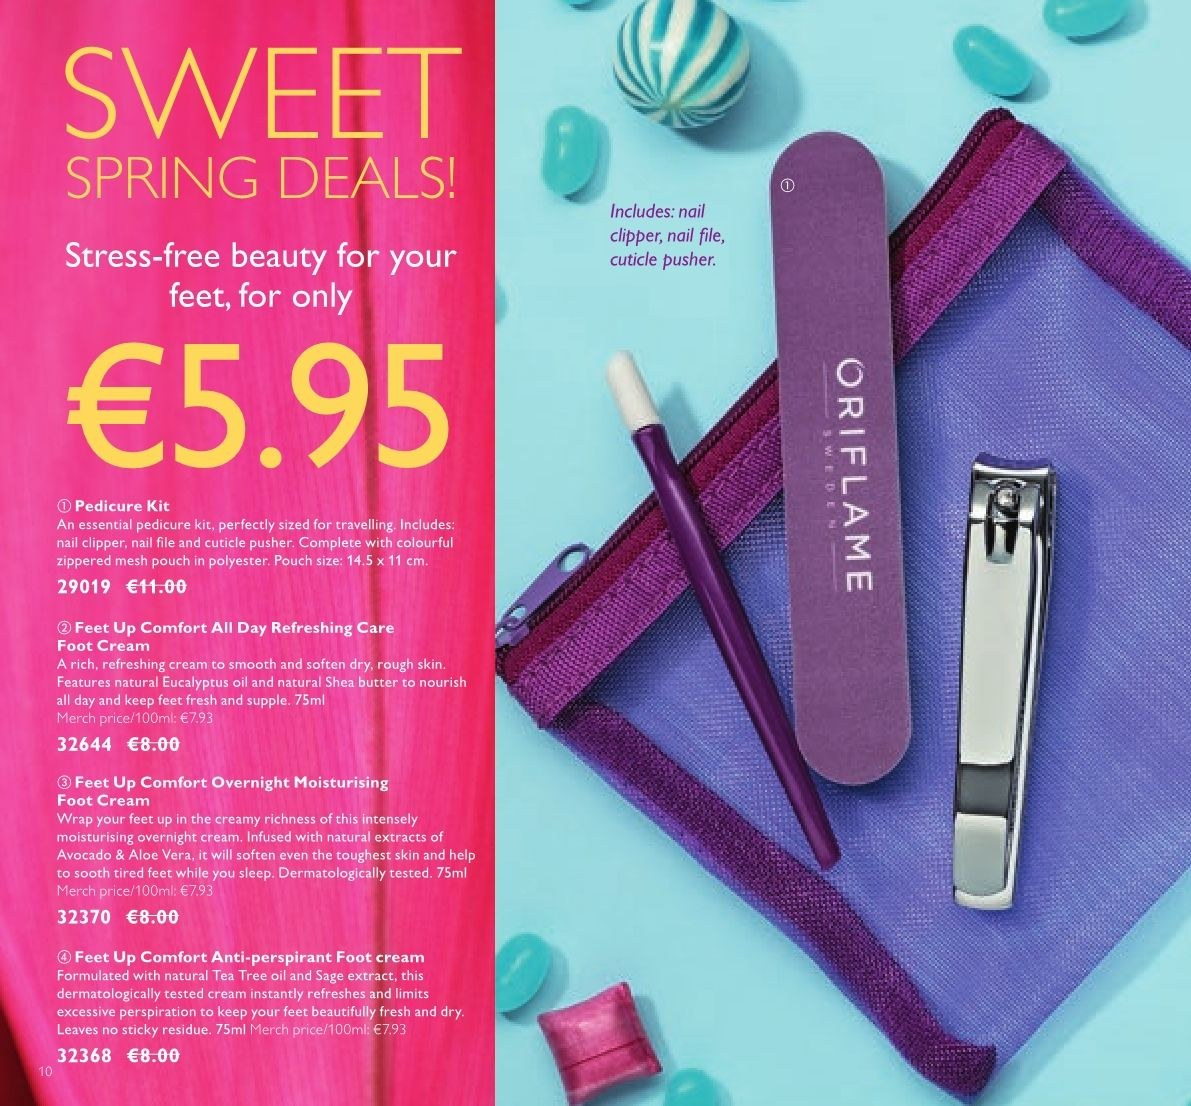 Oriflame offer  - 23.3.2018 - 12.4.2018 - Sales products - shea butter, oil, anti-perspirant, pedicure tool, cuticle pusher, tea tree oil, wrap, feet up. Page 10.